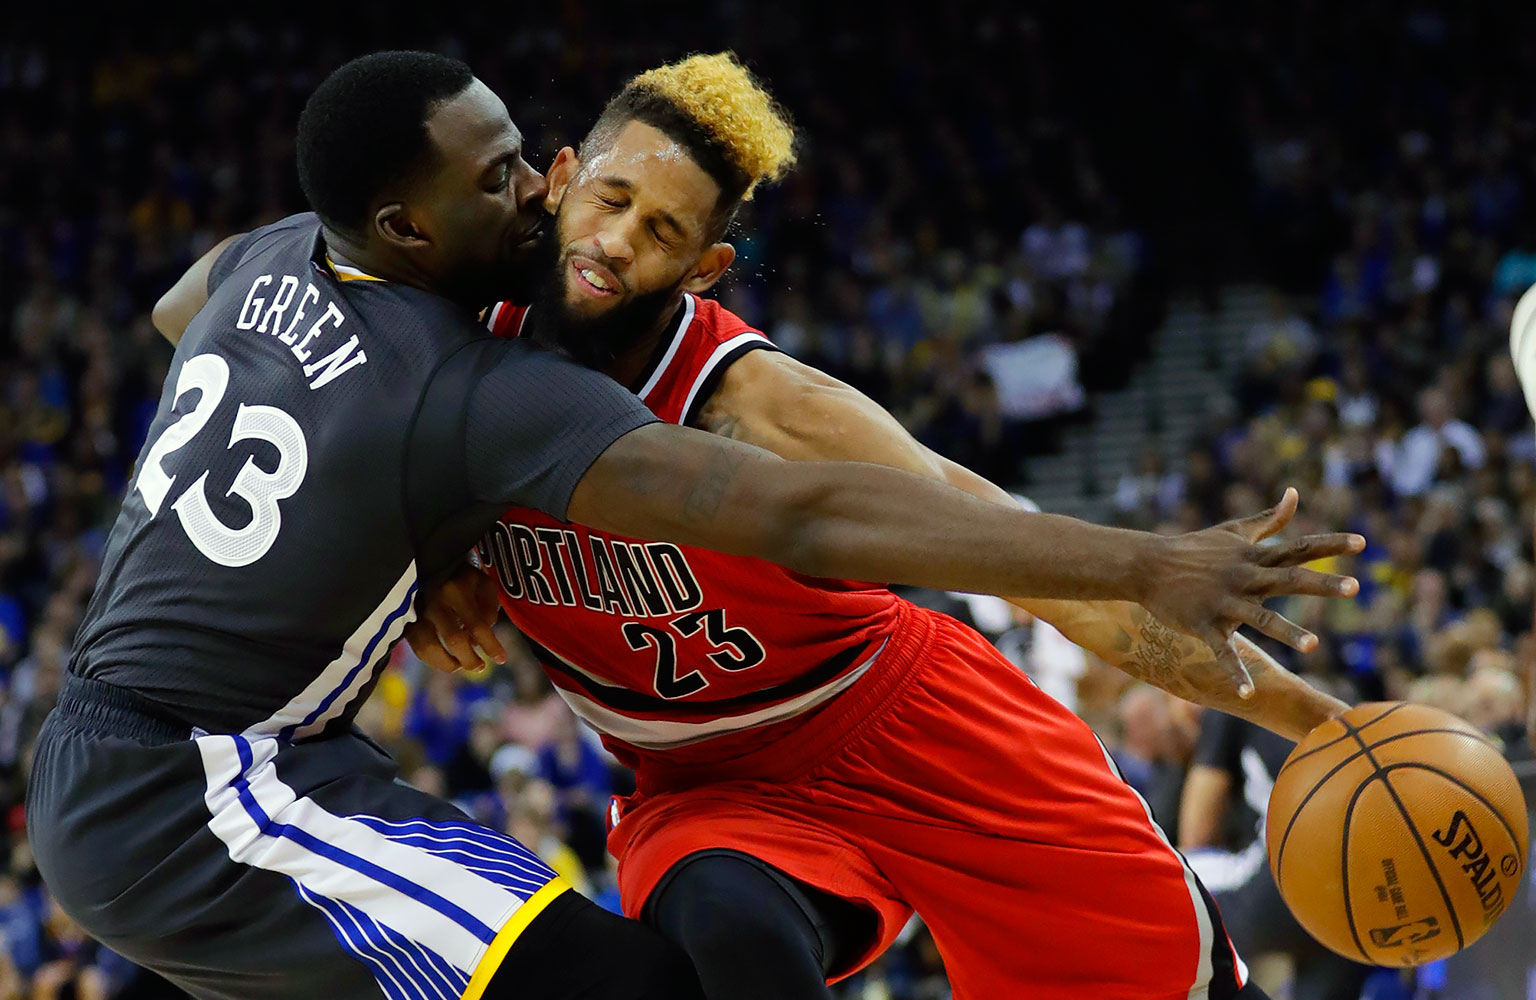 Golden State Warriors power forward Draymond Green fouls Portland Trail Blazers shooting guard Allen Crabbe on Dec. 17, 2016 at ORACLE Arena in Oakland, Calif.